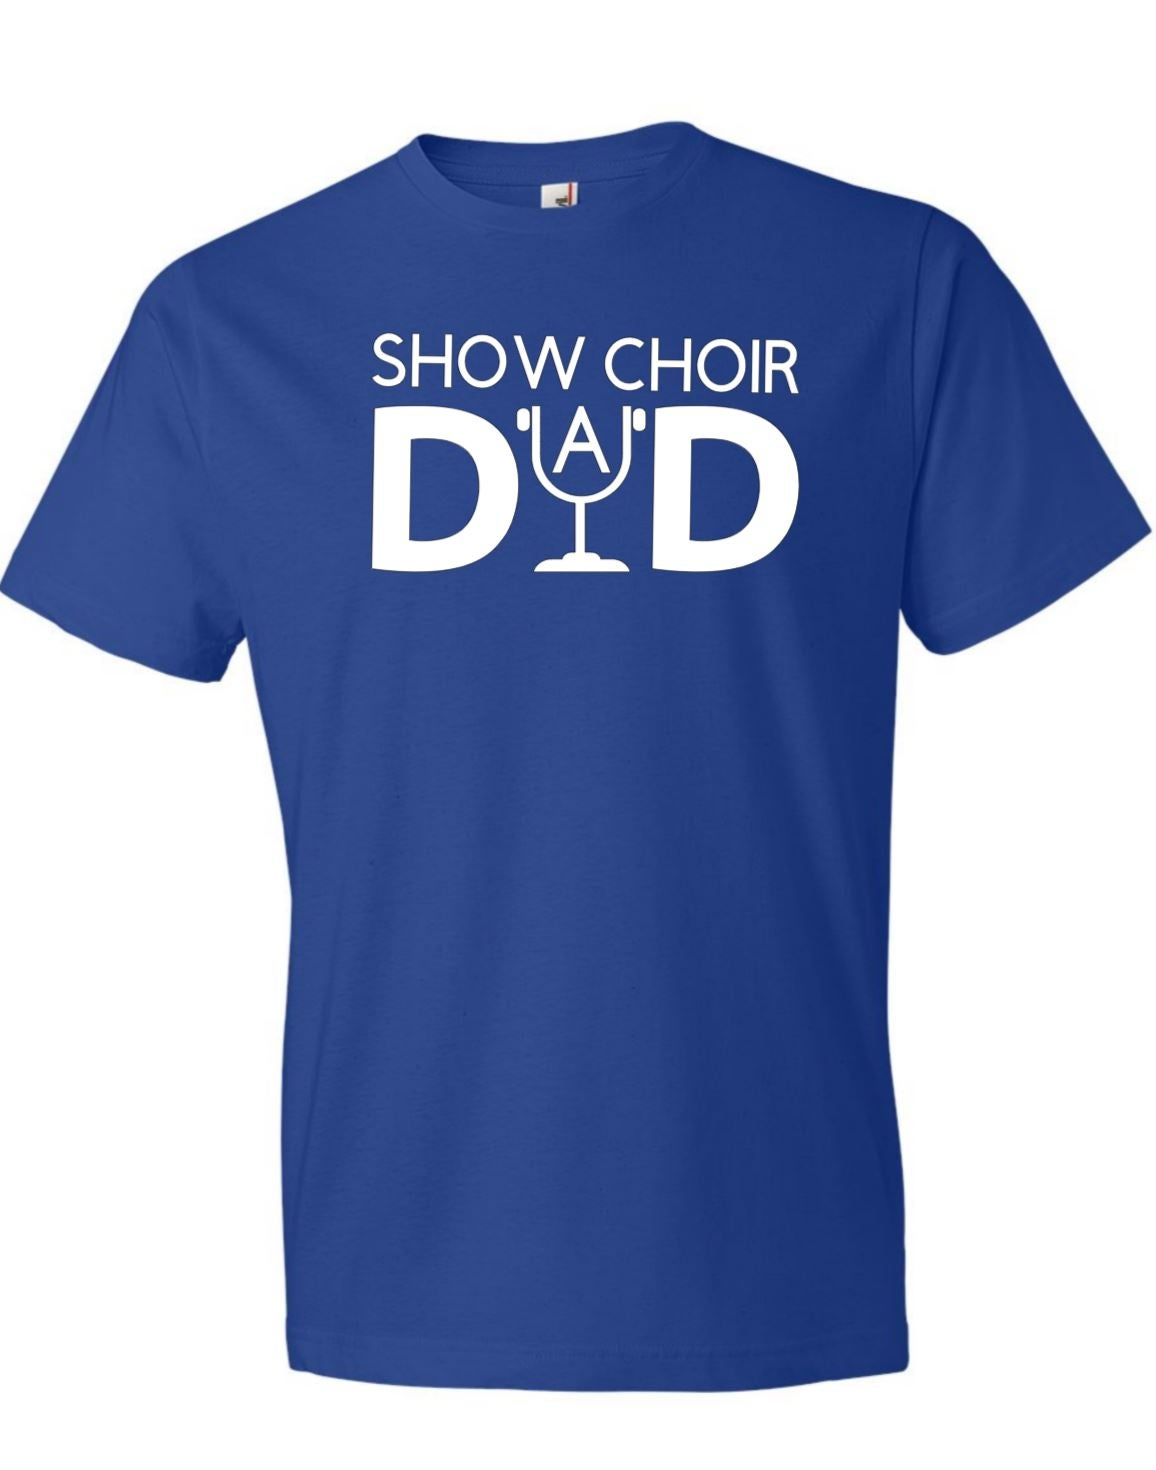 Image of Show Choir Dad Short Sleeve Tee